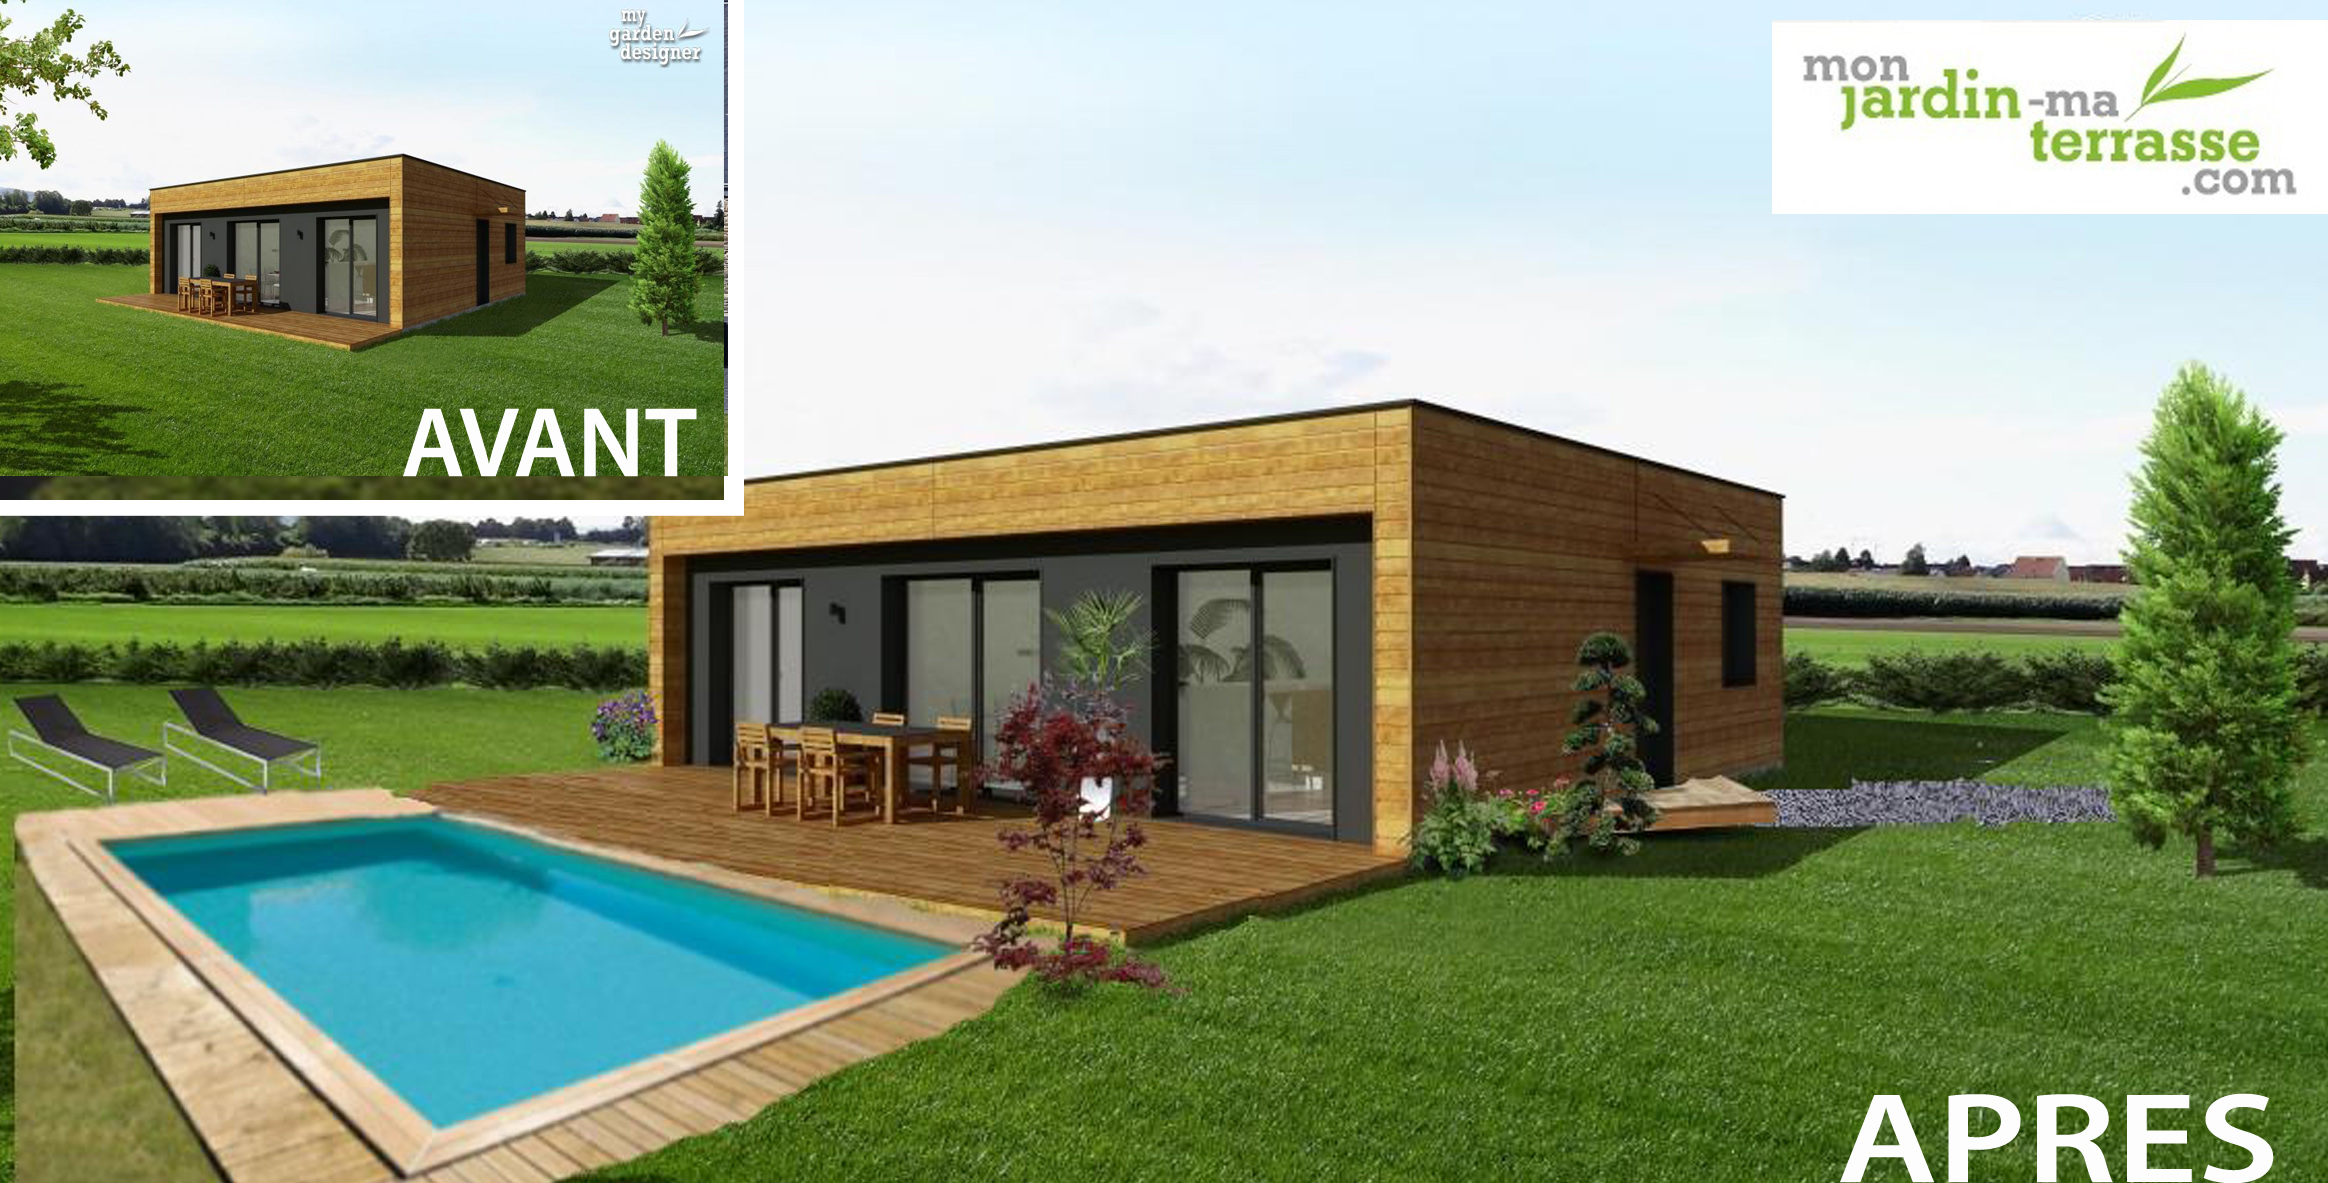 Am nagement ext rieur d une piscine monjardin for Amenagement exterieur piscine